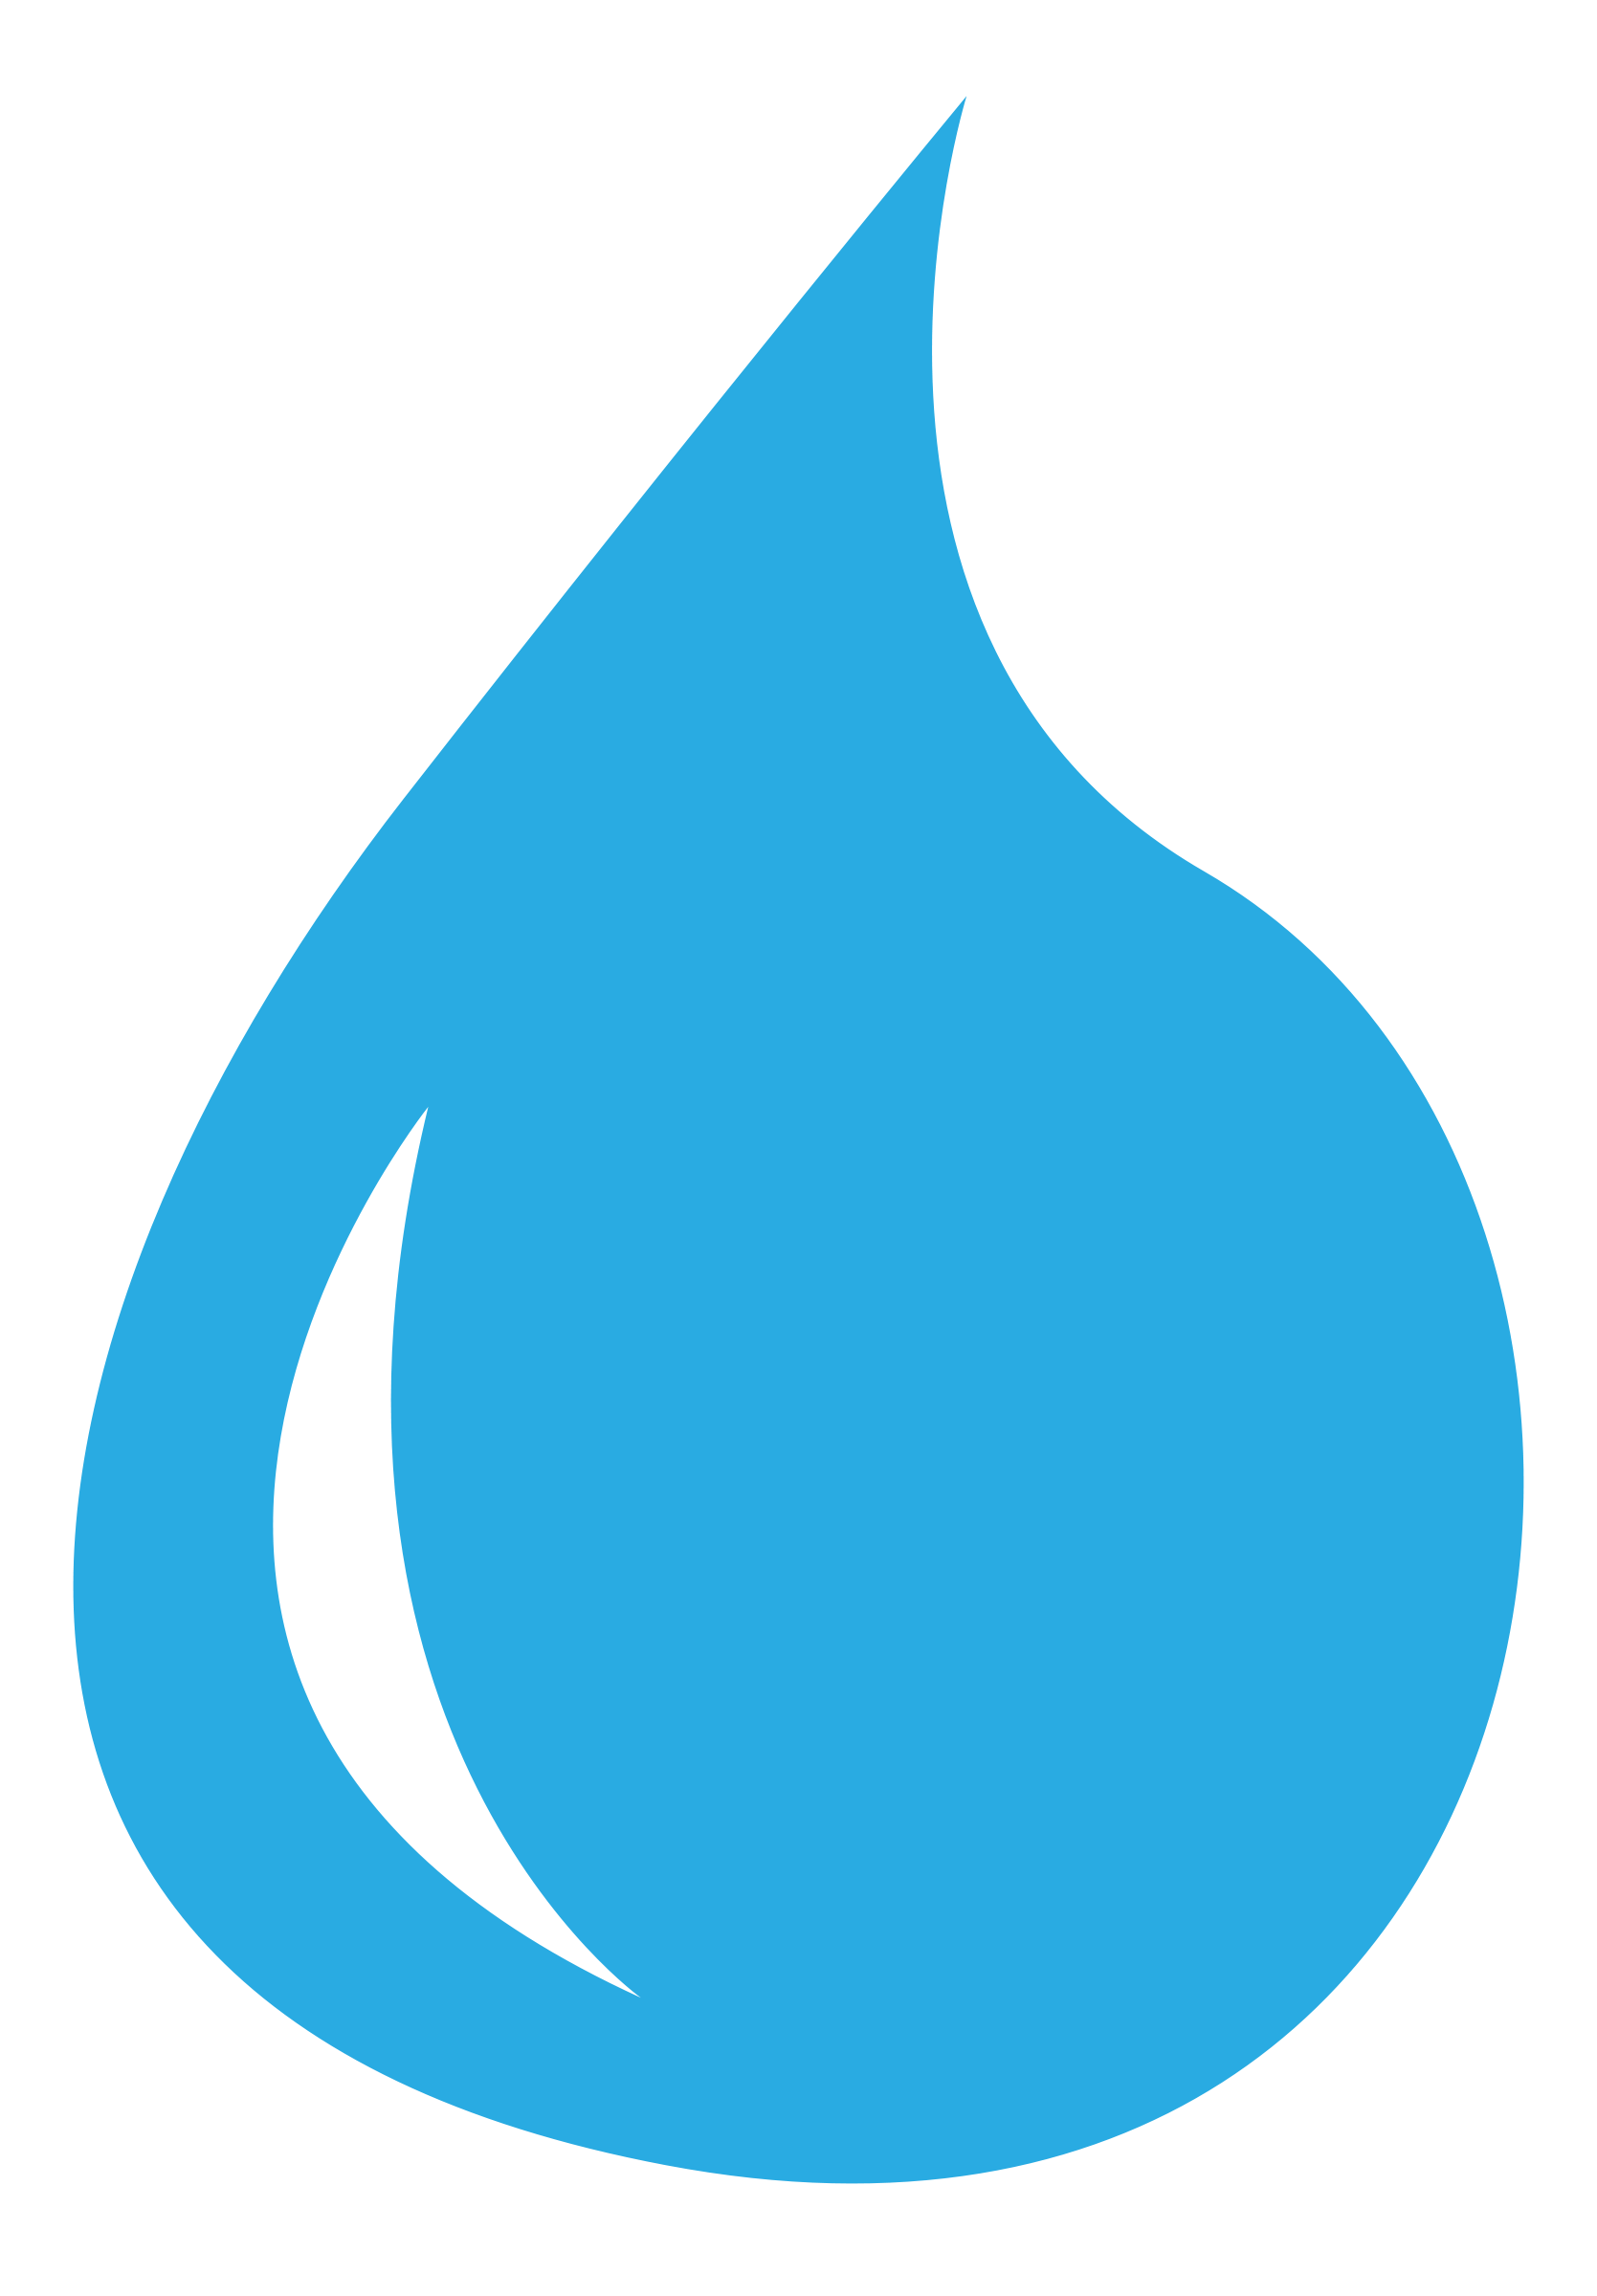 Water Drop Icon Clipart Best-Water Drop Icon Clipart Best-10